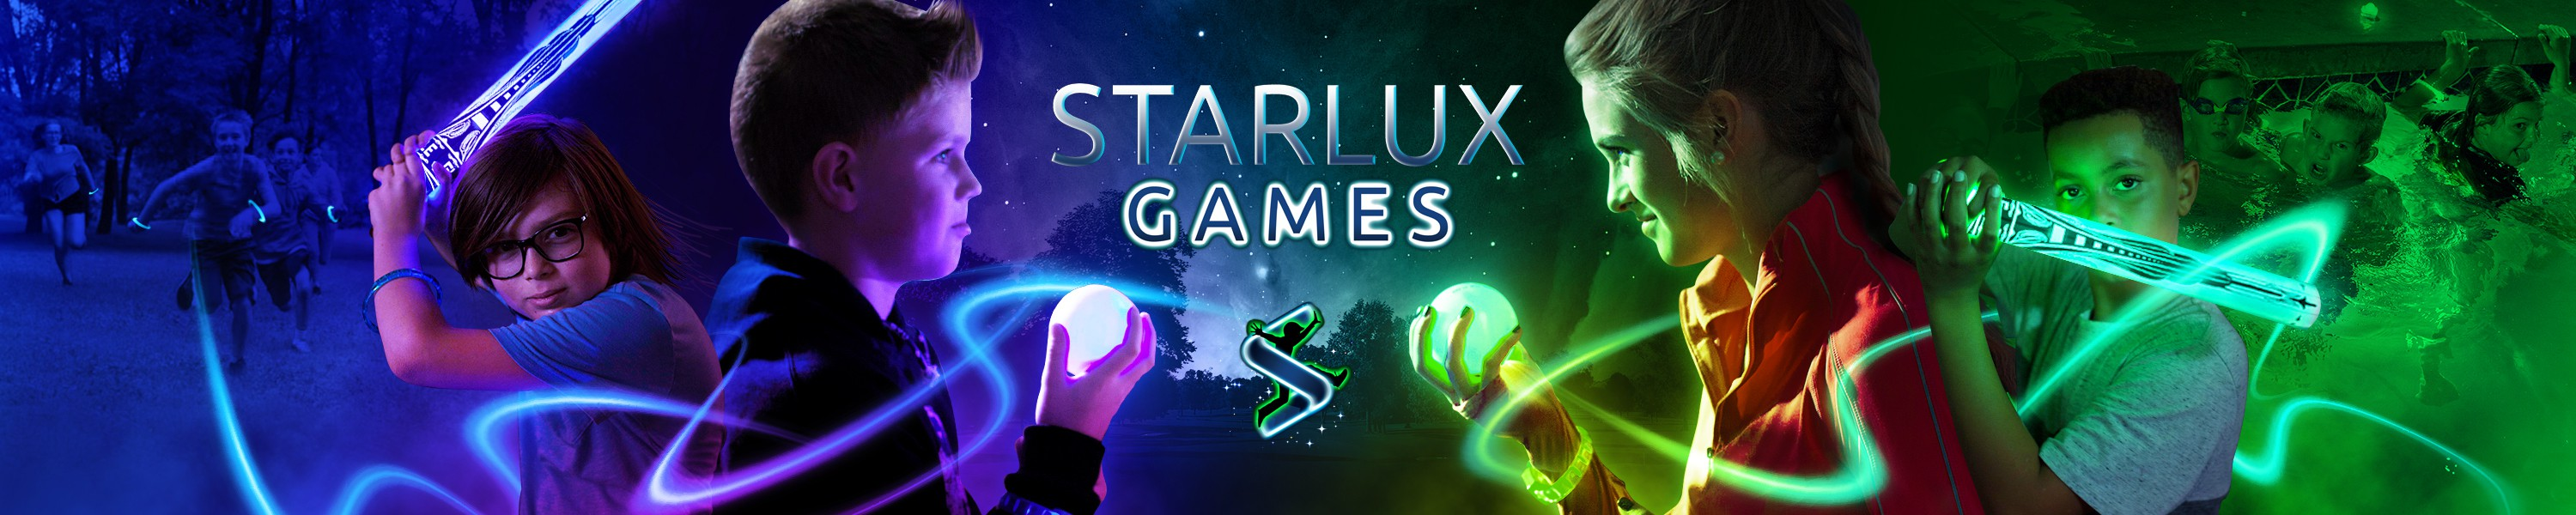 Create an image that radiate excitement for our glow-in-the-dark games